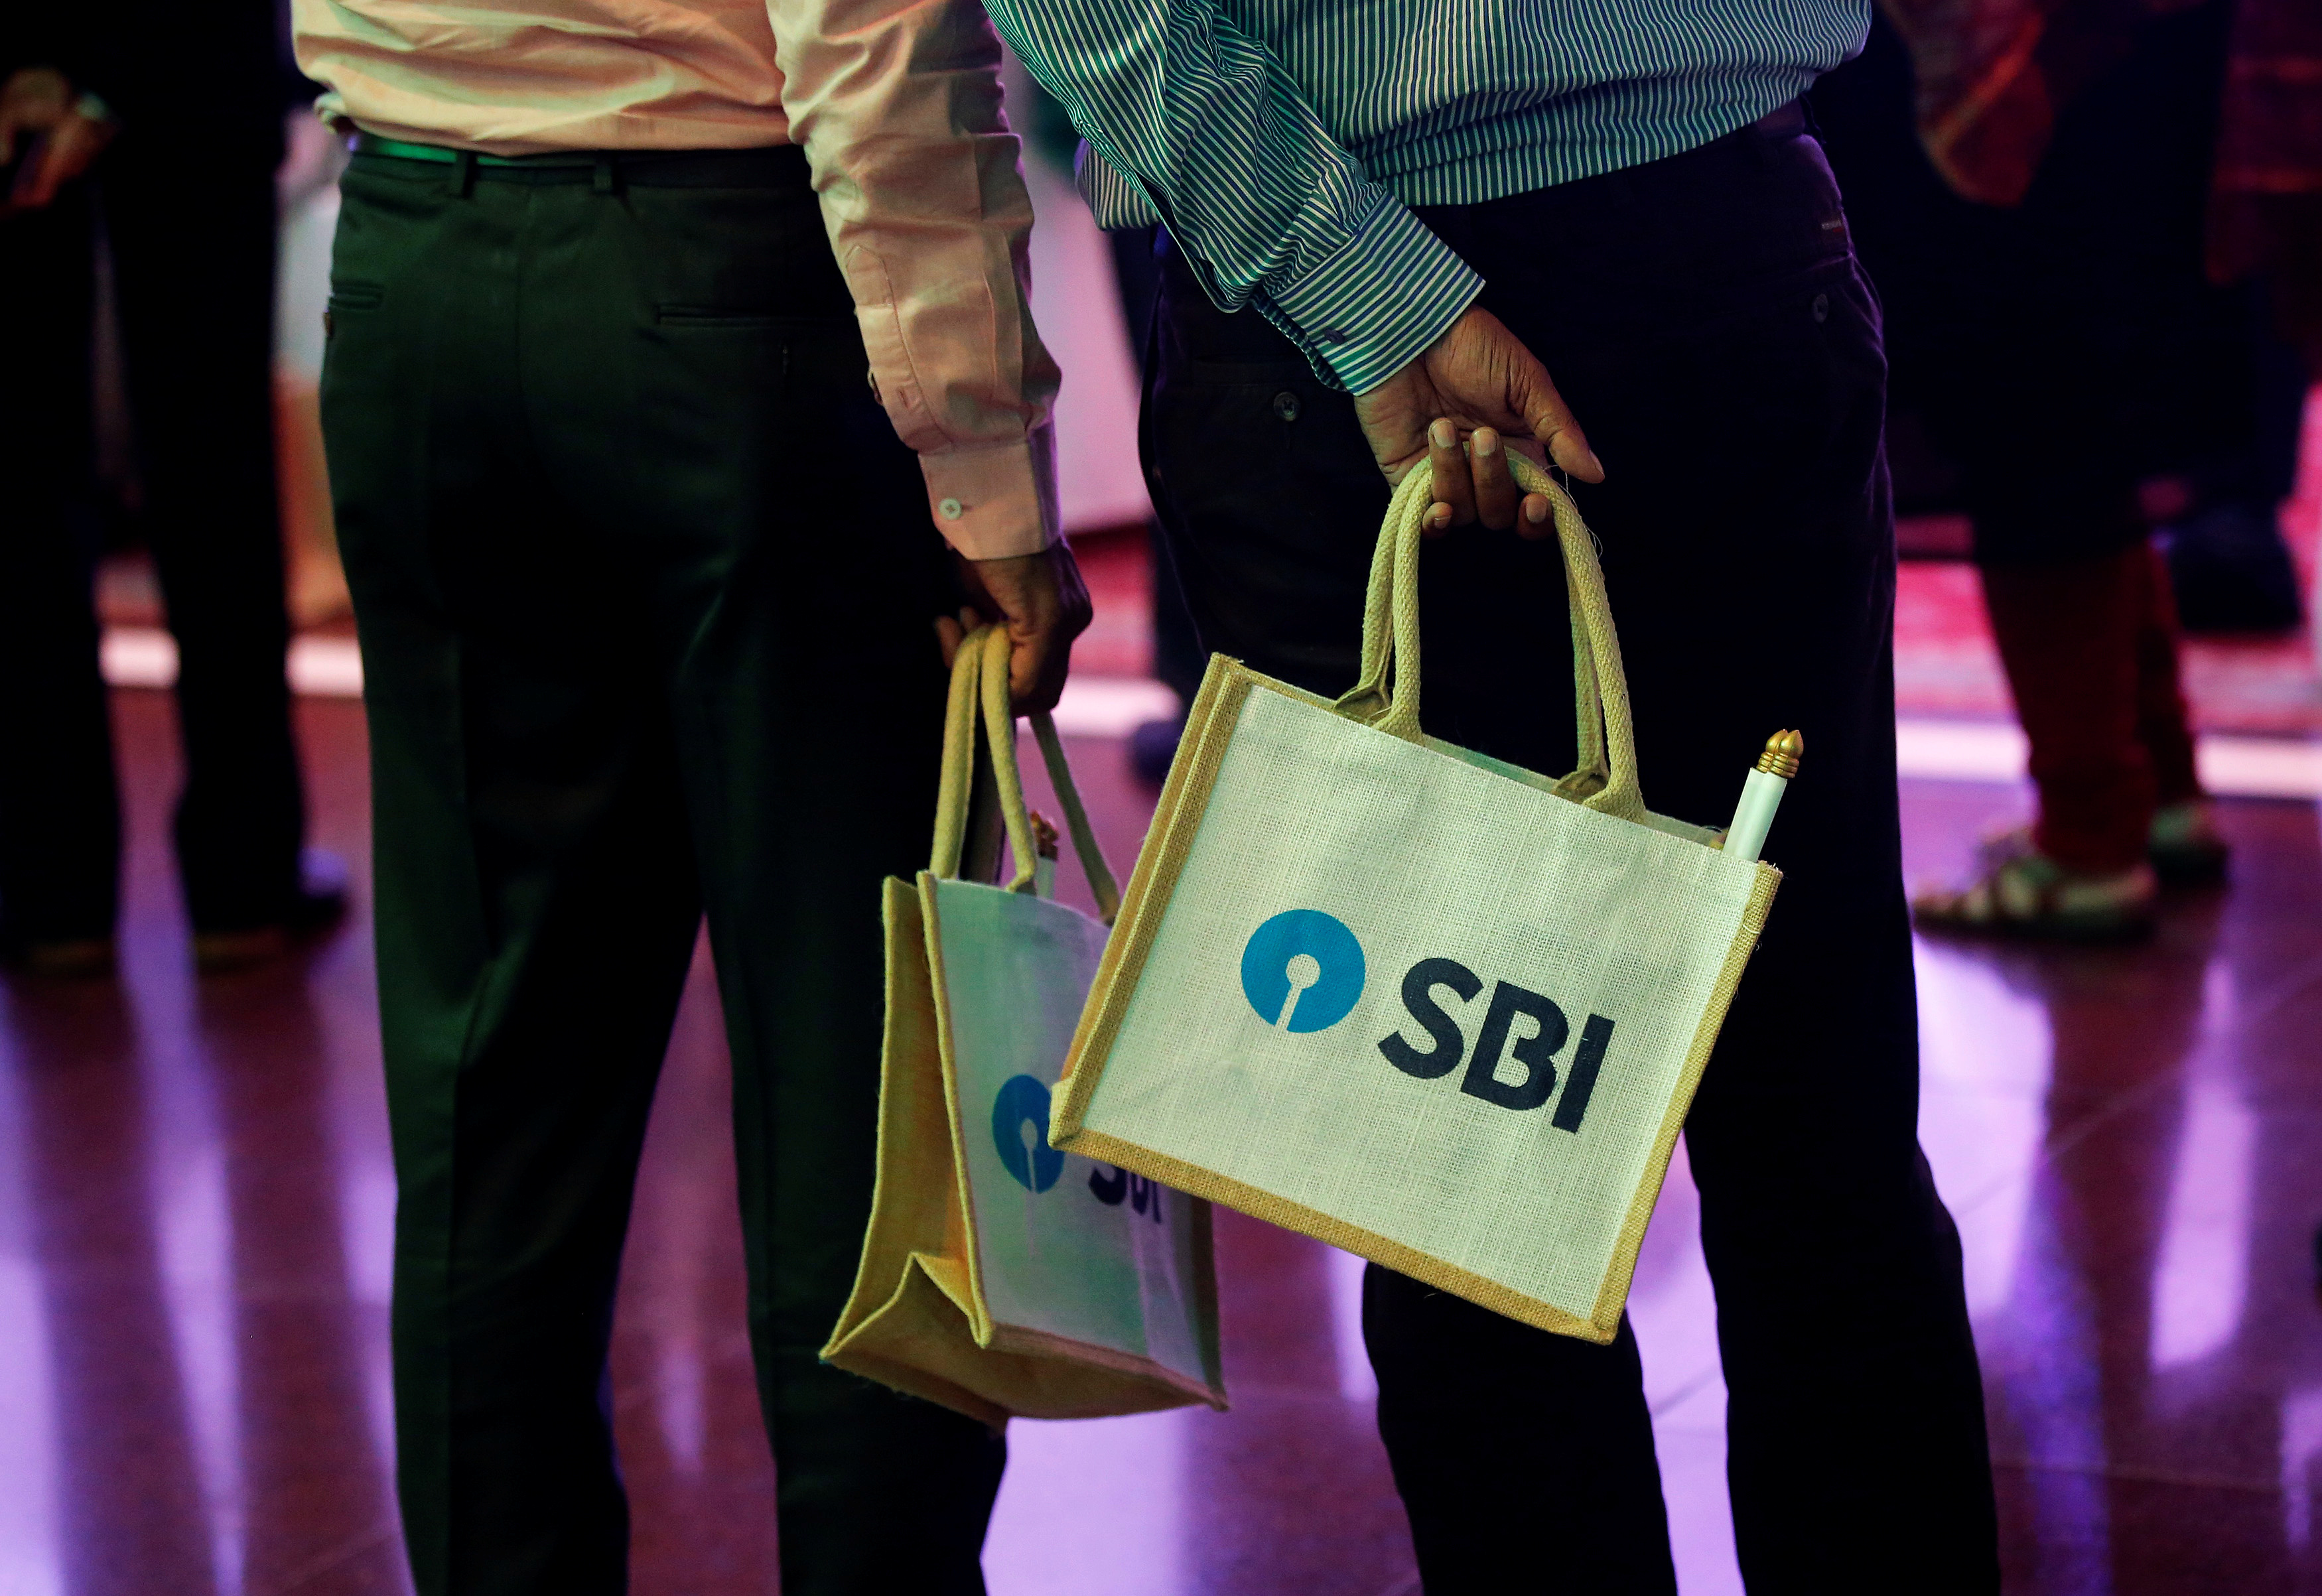 The State Bank of India (SBI) logo is seen on bags carried by participants during a news conference in Mumbai, India October 30,  2017. REUTERS/Shailesh Andrade/File Photo